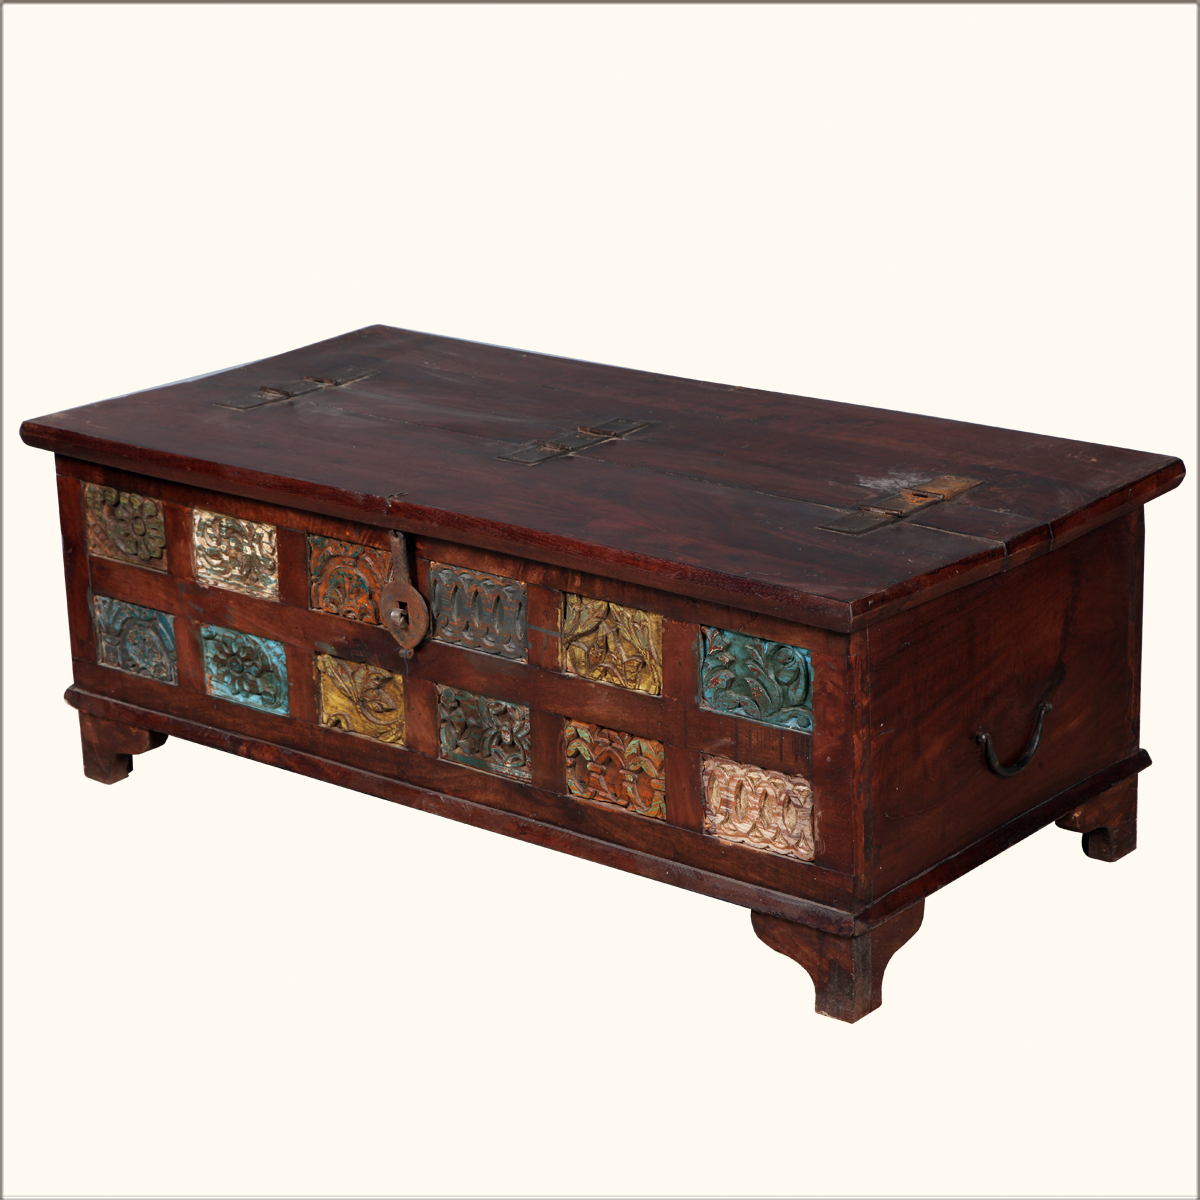 Rustic Reclaimed Wood Storage Trunk Coffee Table Hope Chest Box Furniture